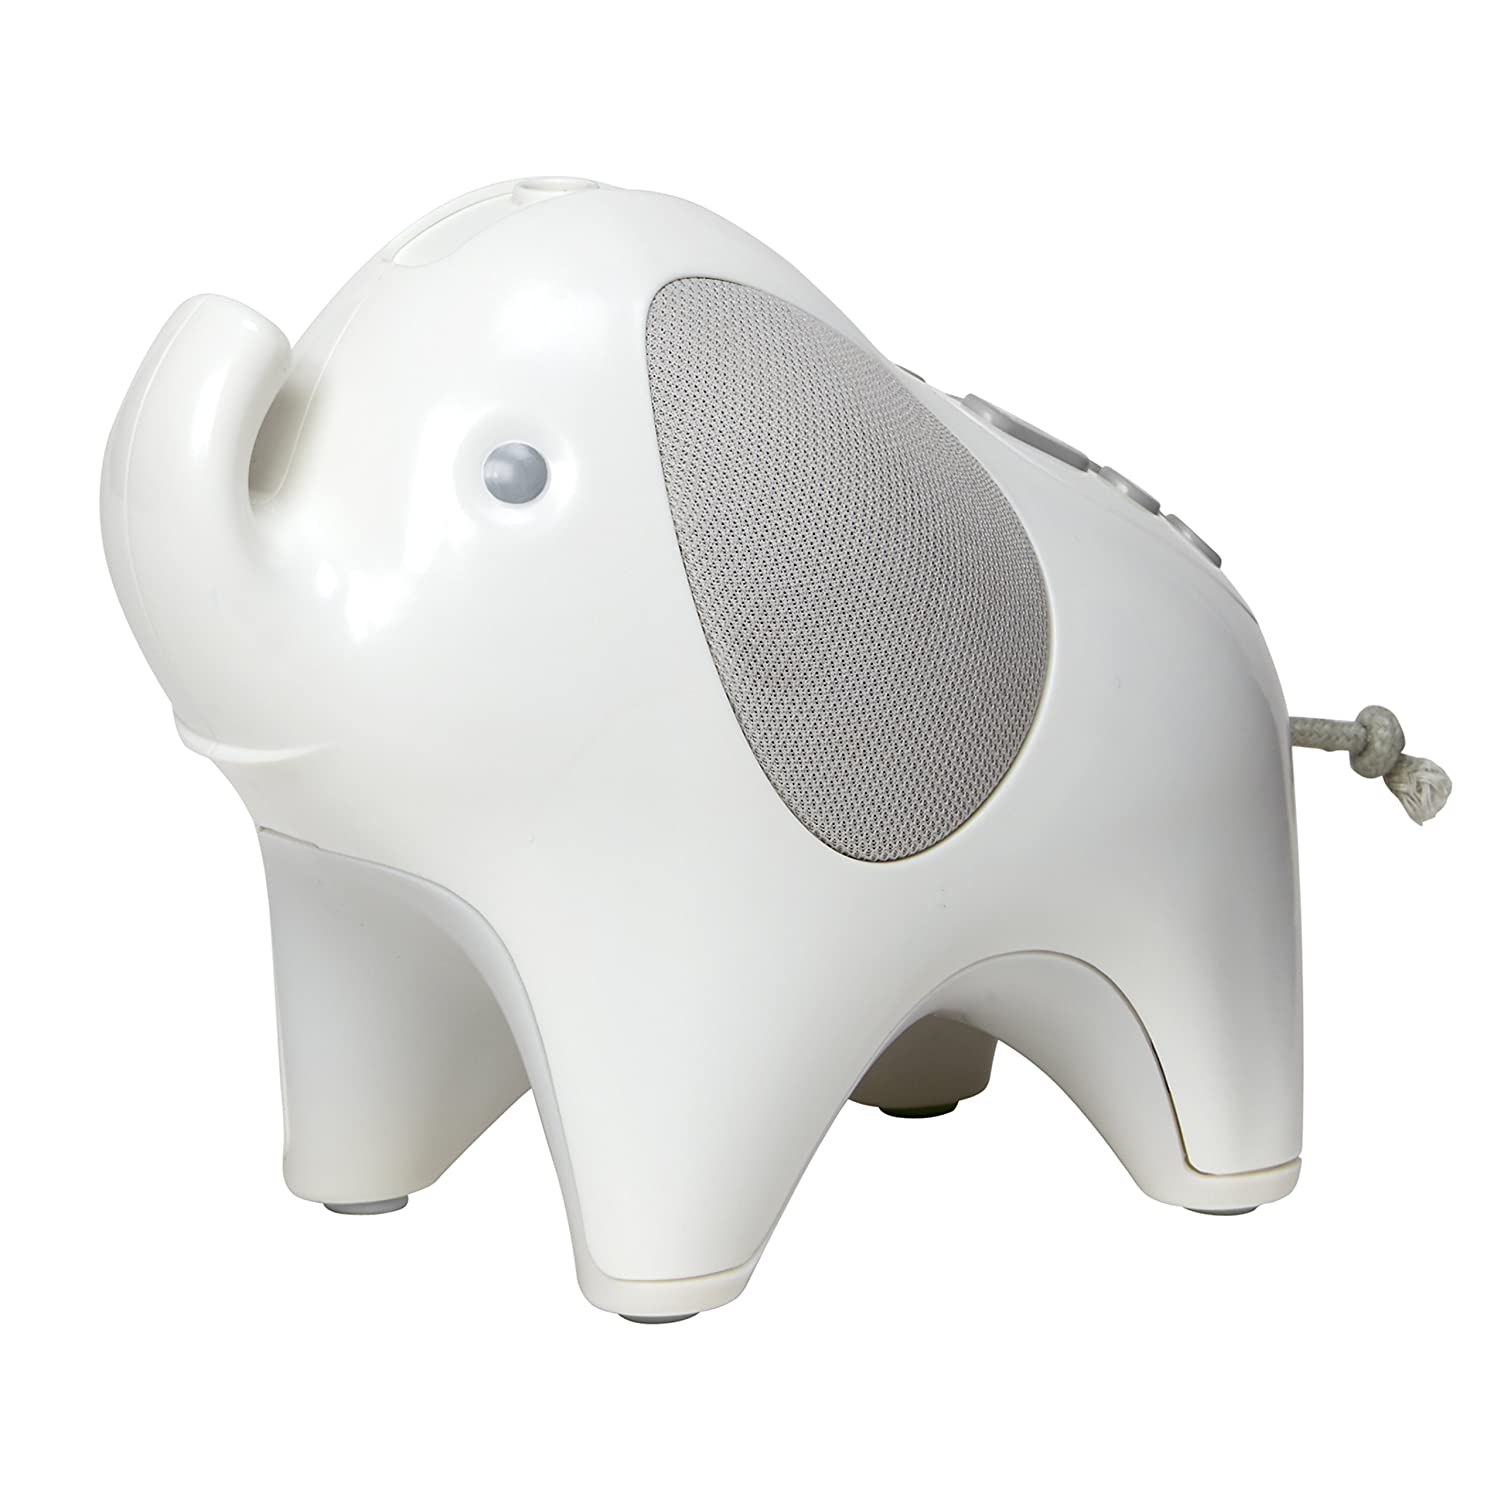 Skip Hop Moonlight and Melodies Nightlight Projector Soother (Elephant) 186010-UK